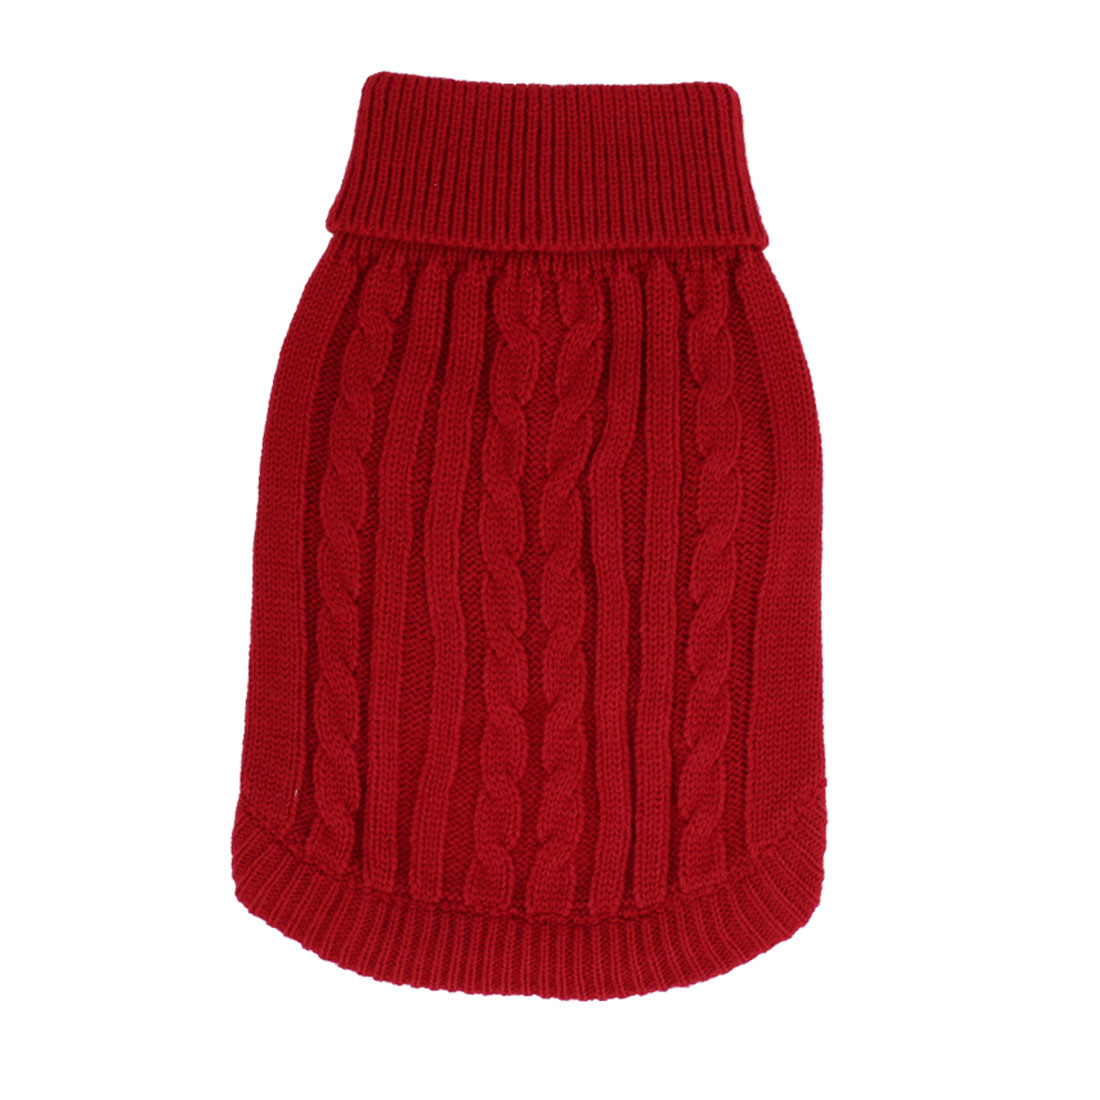 Pet Dog Doggy Ribbed Cuff Twisted Knitwear Turtleneck Apparel Sweater Clothes Red Size M